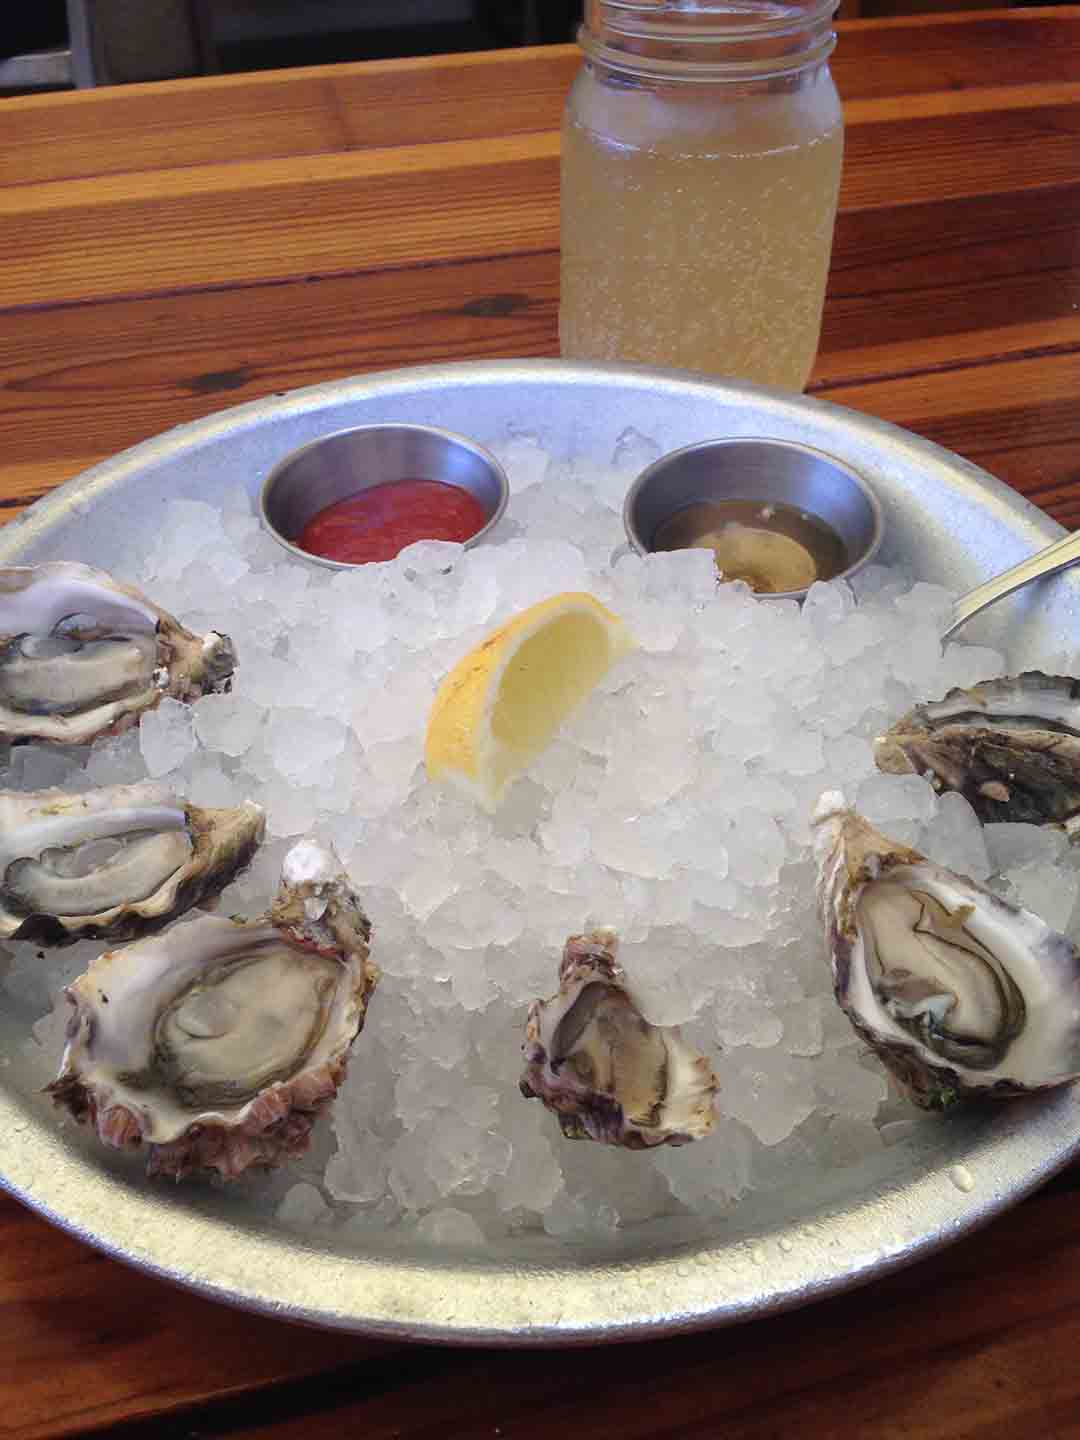 Fish 101 is the perfect place to ease into oysters with a half-dozen of their smaller Kumamoto's from Baja.